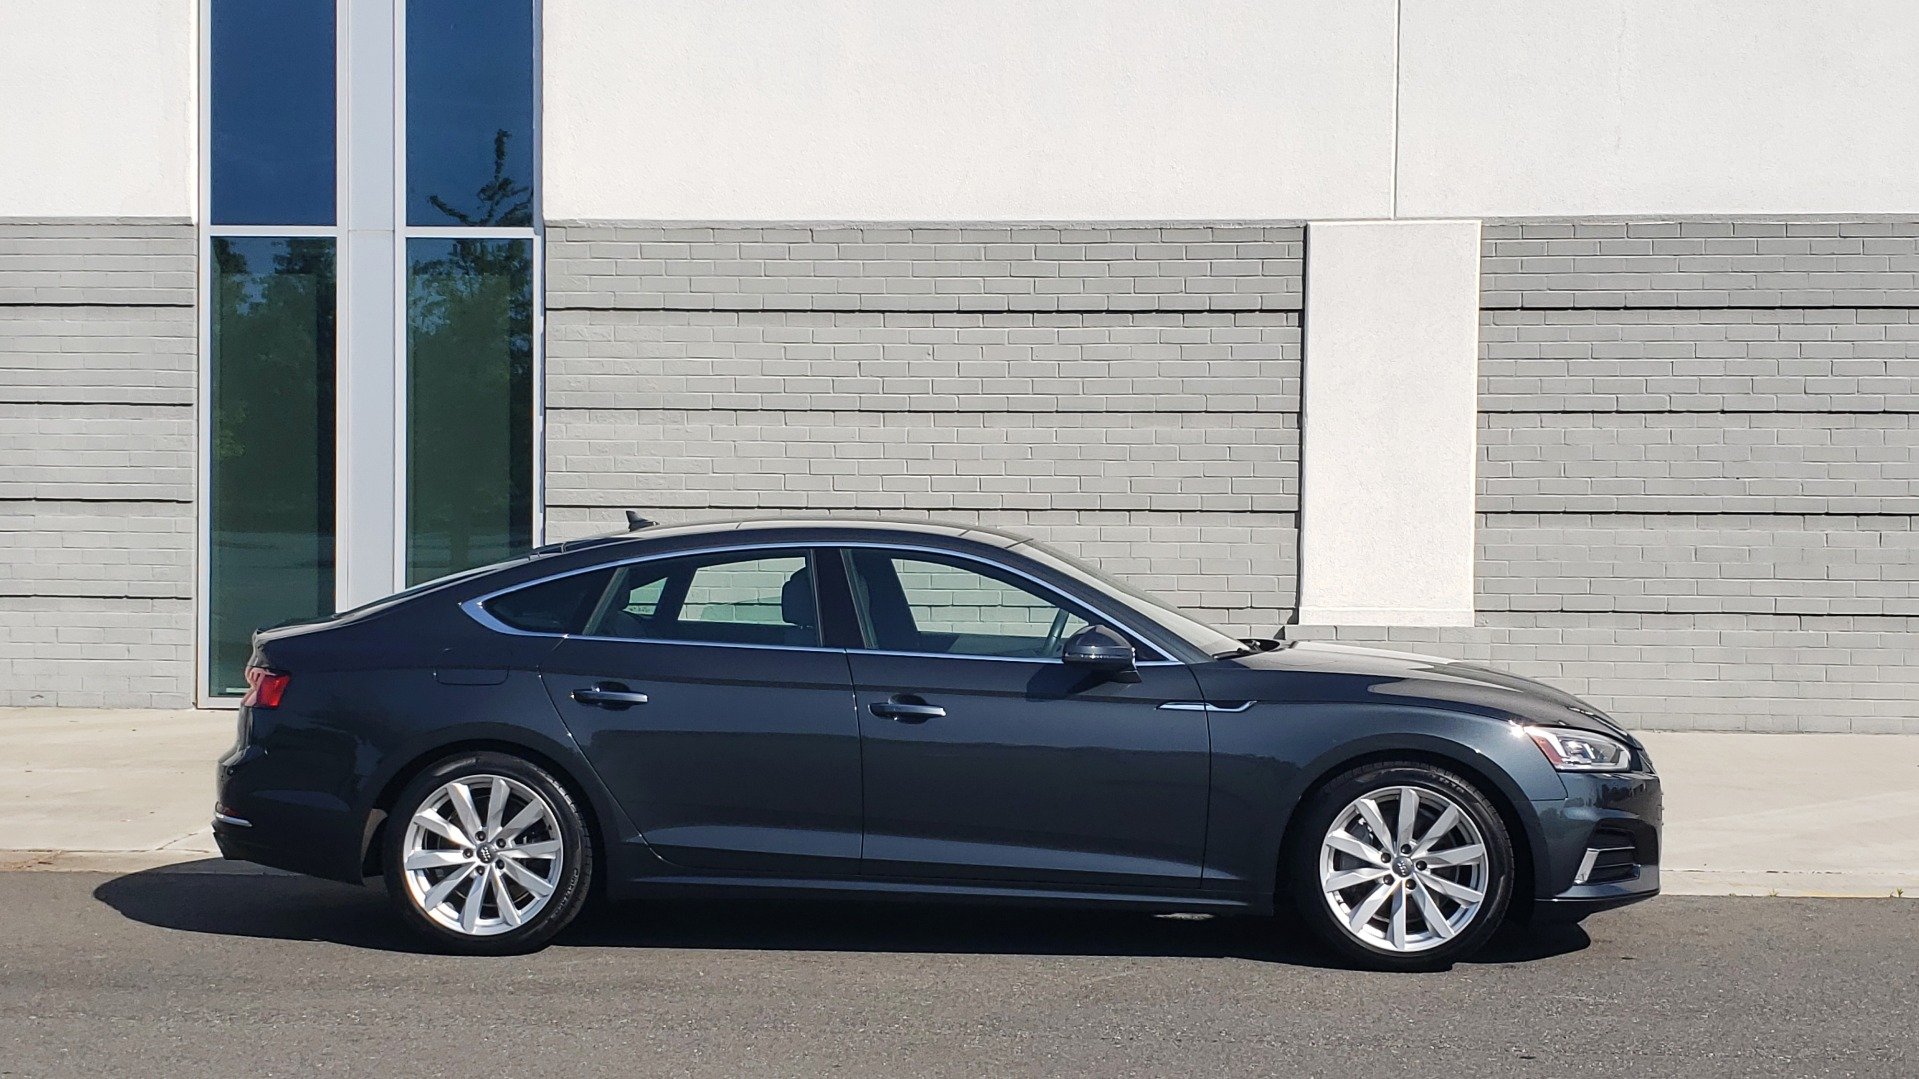 Used 2018 Audi A5 SPORTBACK PREMIUM PLUS 2.0T / AWD / NAV / B&O SND / SUNROOF / REARVIEW for sale Sold at Formula Imports in Charlotte NC 28227 13